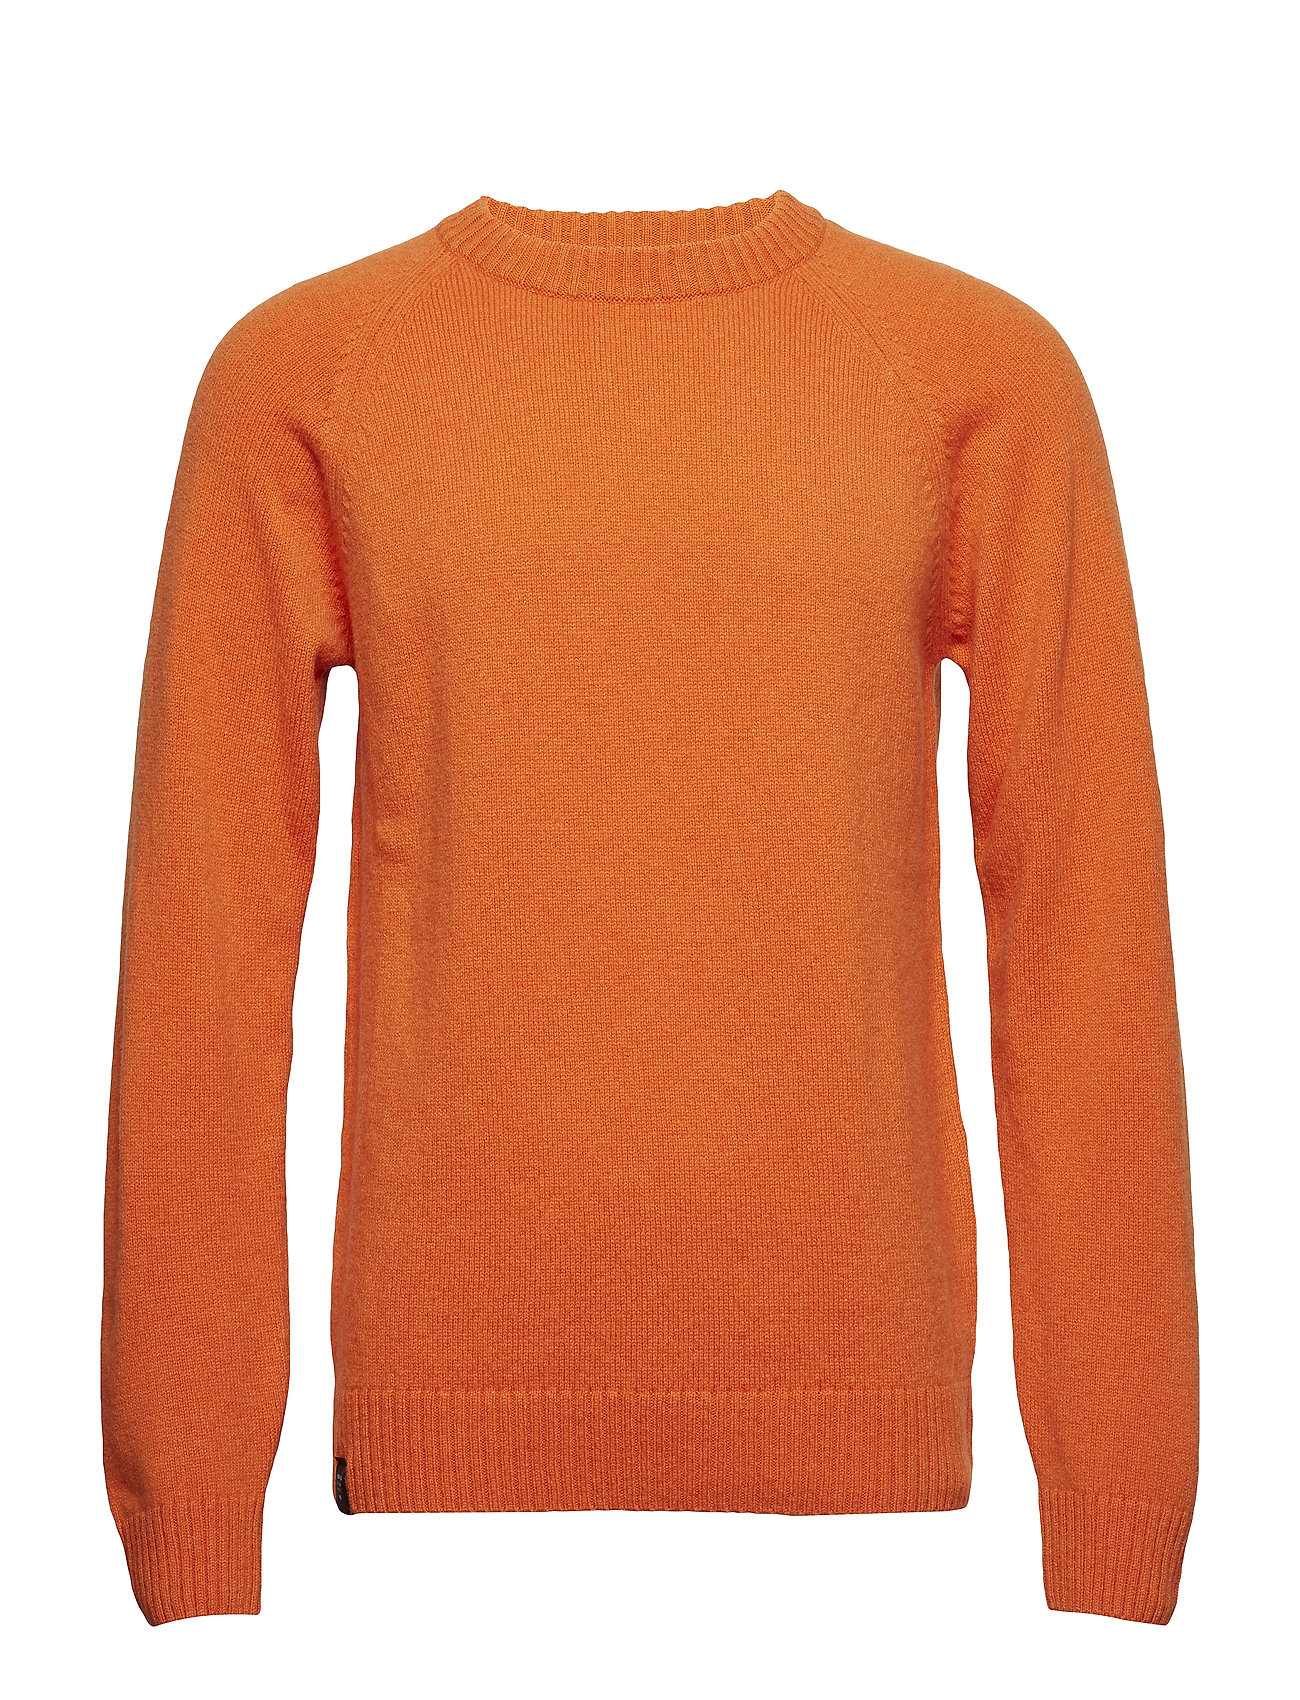 Image of Nordic Knit Strikket Trøje Med Rund Hals Orange Makia (3333151397)